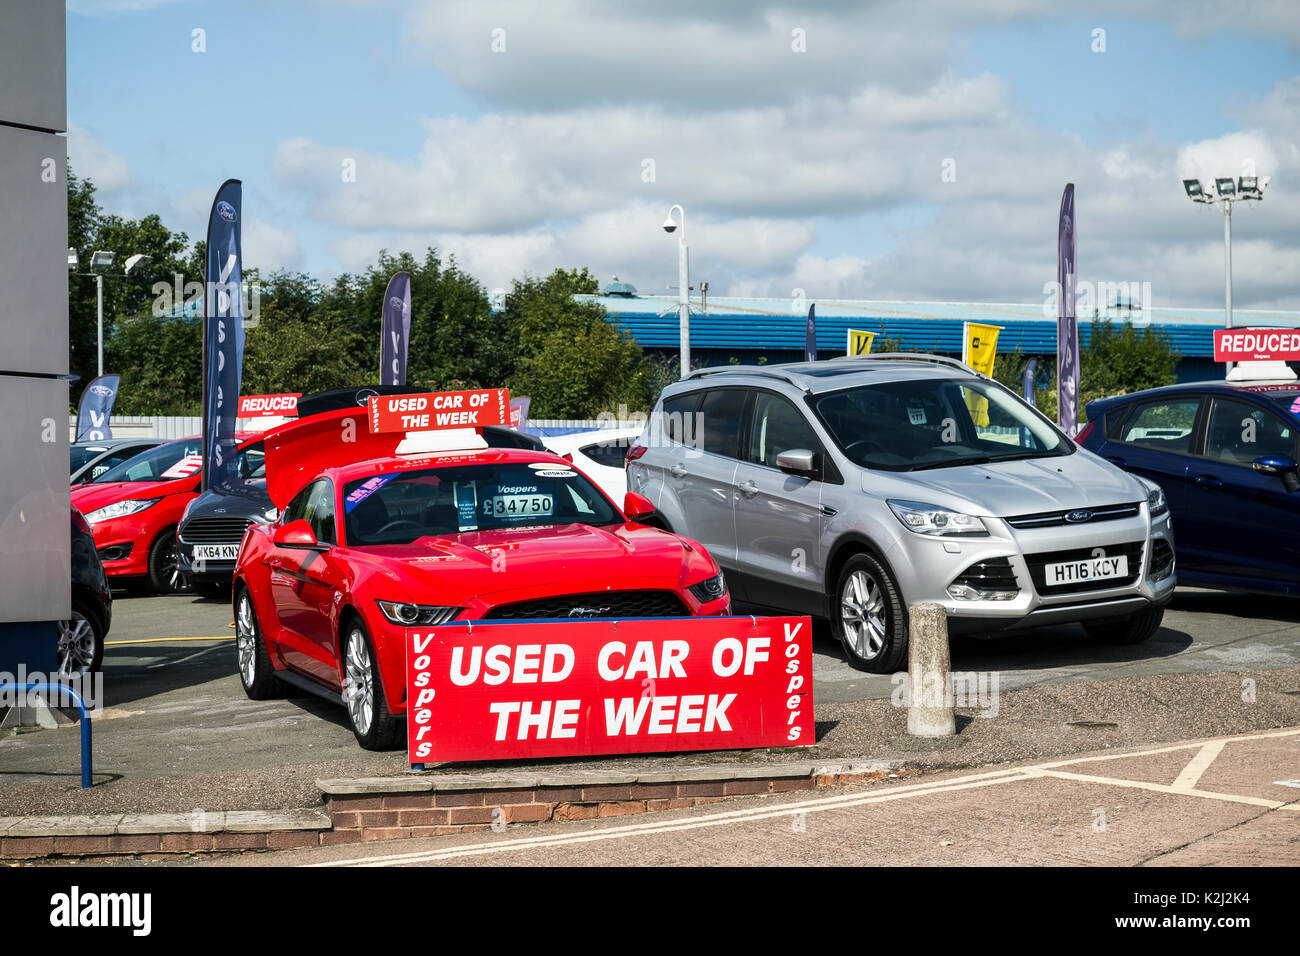 Second Hand Cars Stock Photos Amp Second Hand Cars Stock